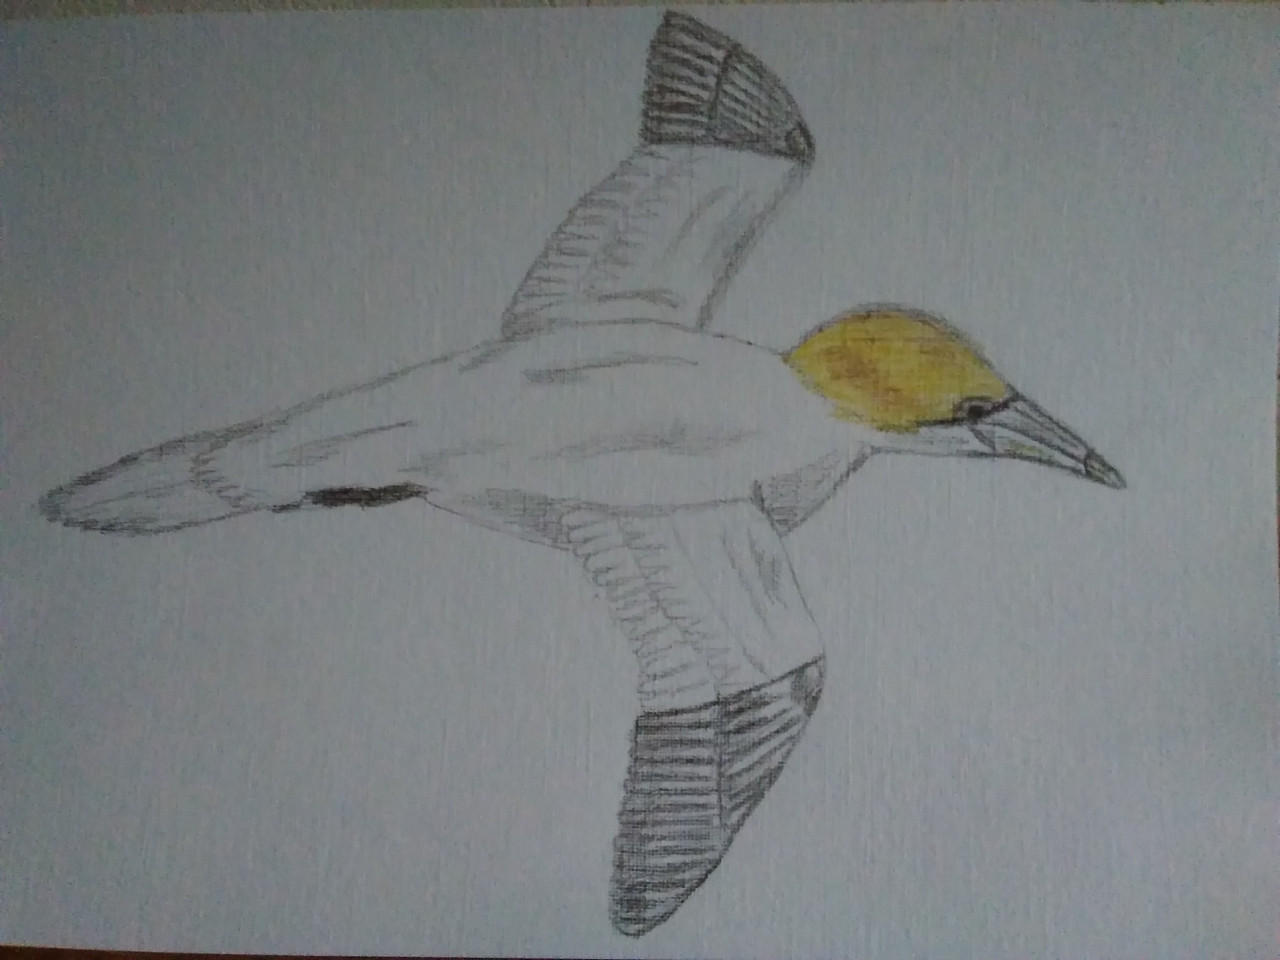 A drawing of a Northern Gannet in flight. The body of th ebird is white with a yellow head. The tips of it's wings are dark grey